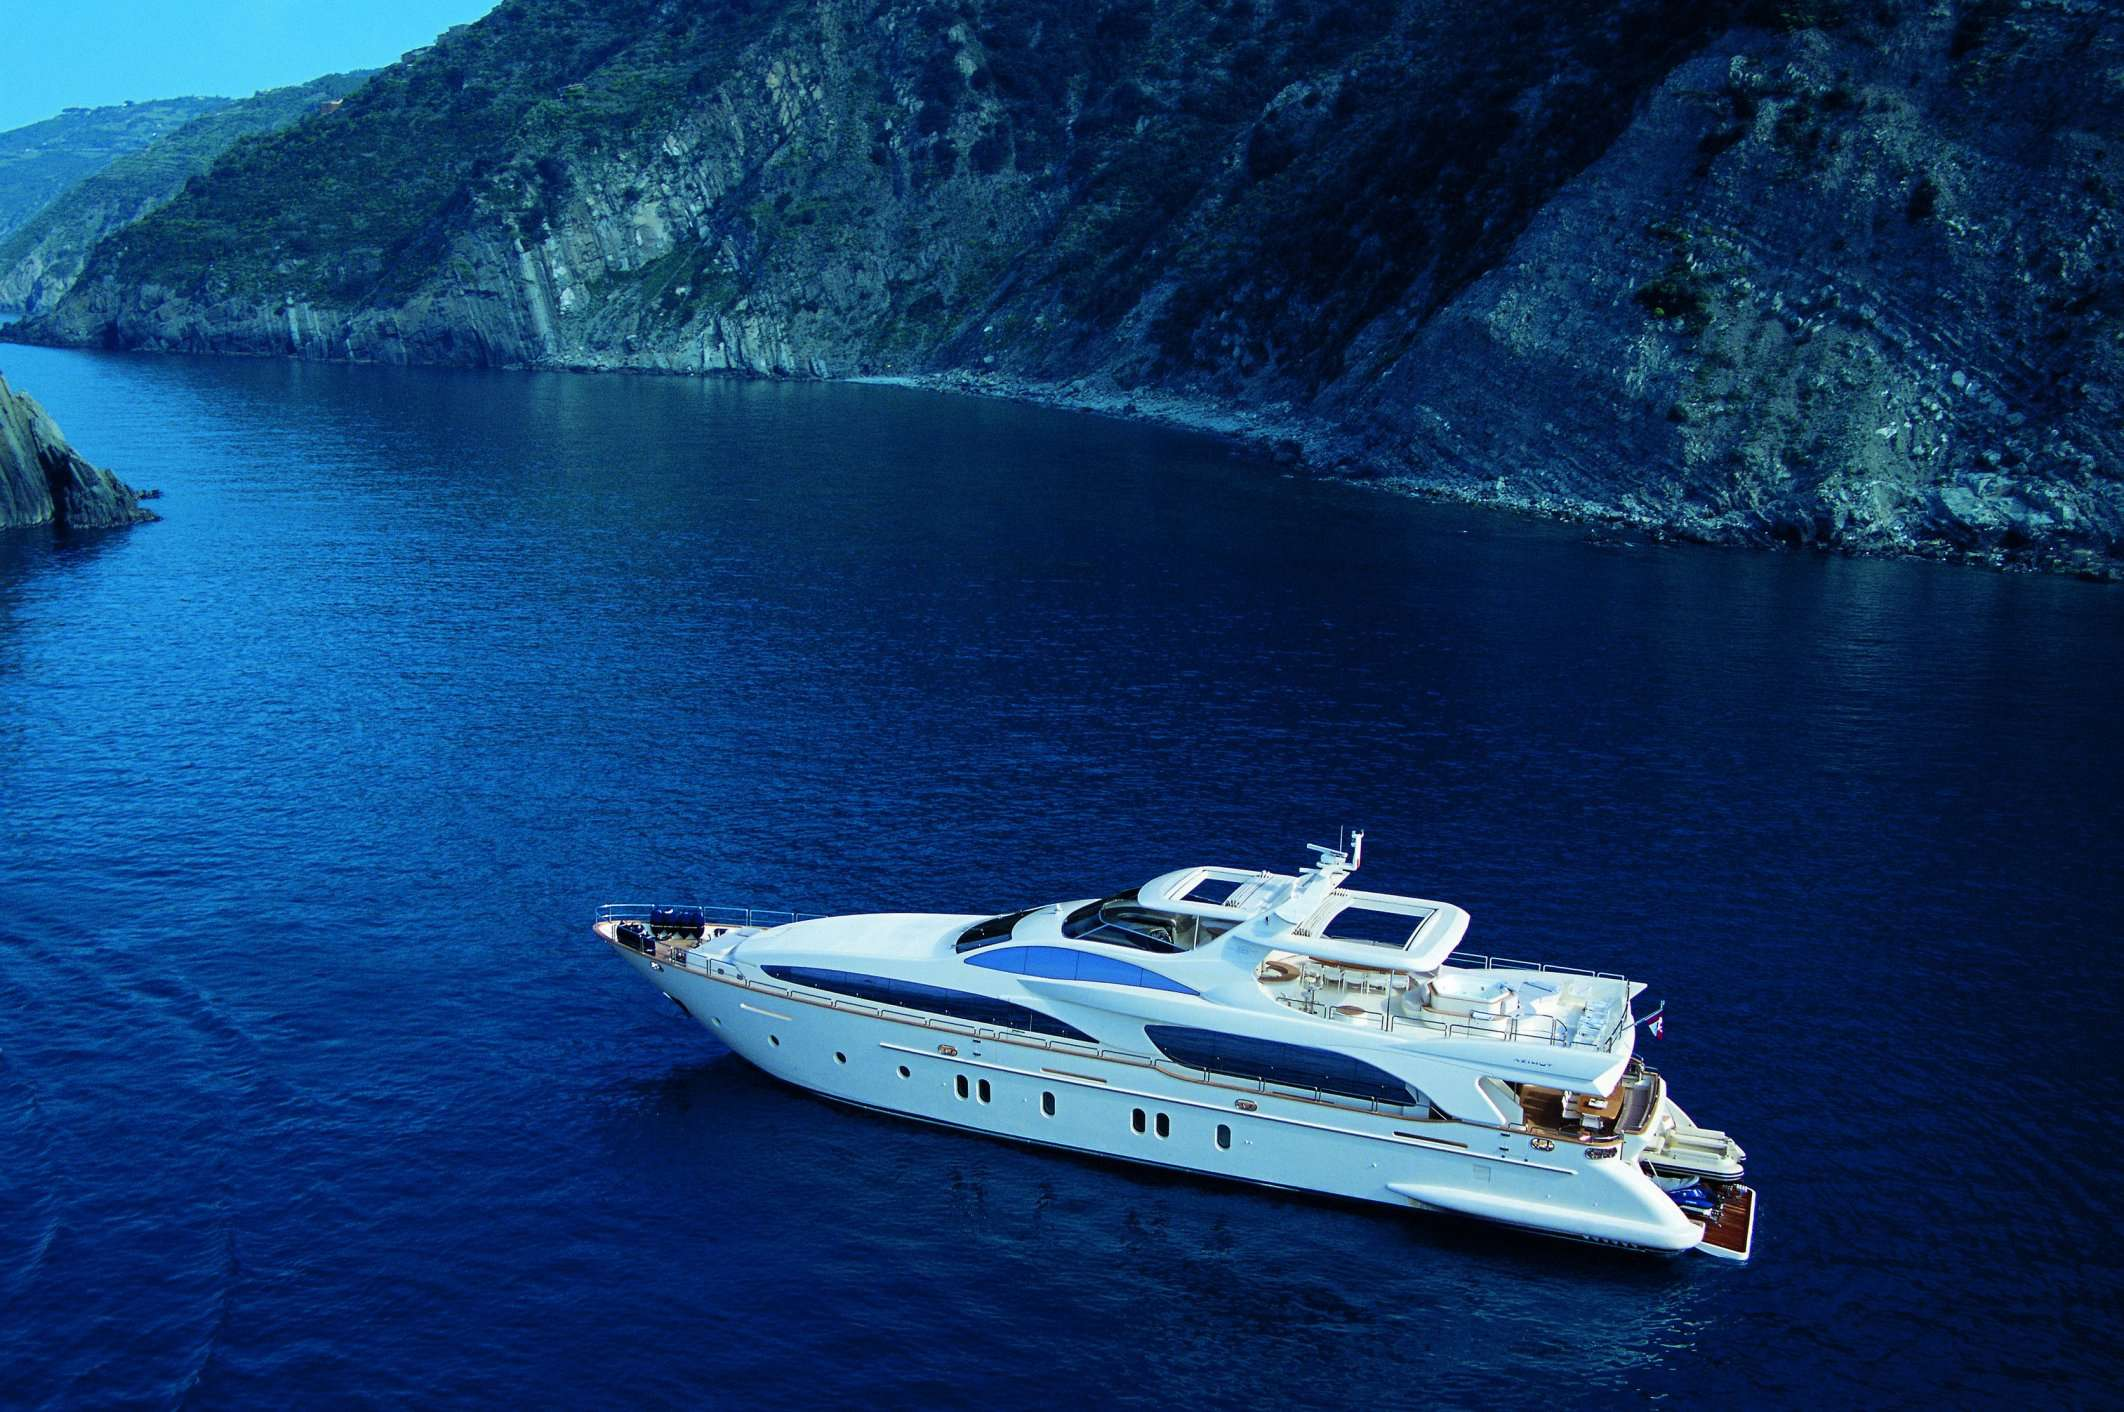 Sailing yacht or motor yacht our experienced captains will sail to